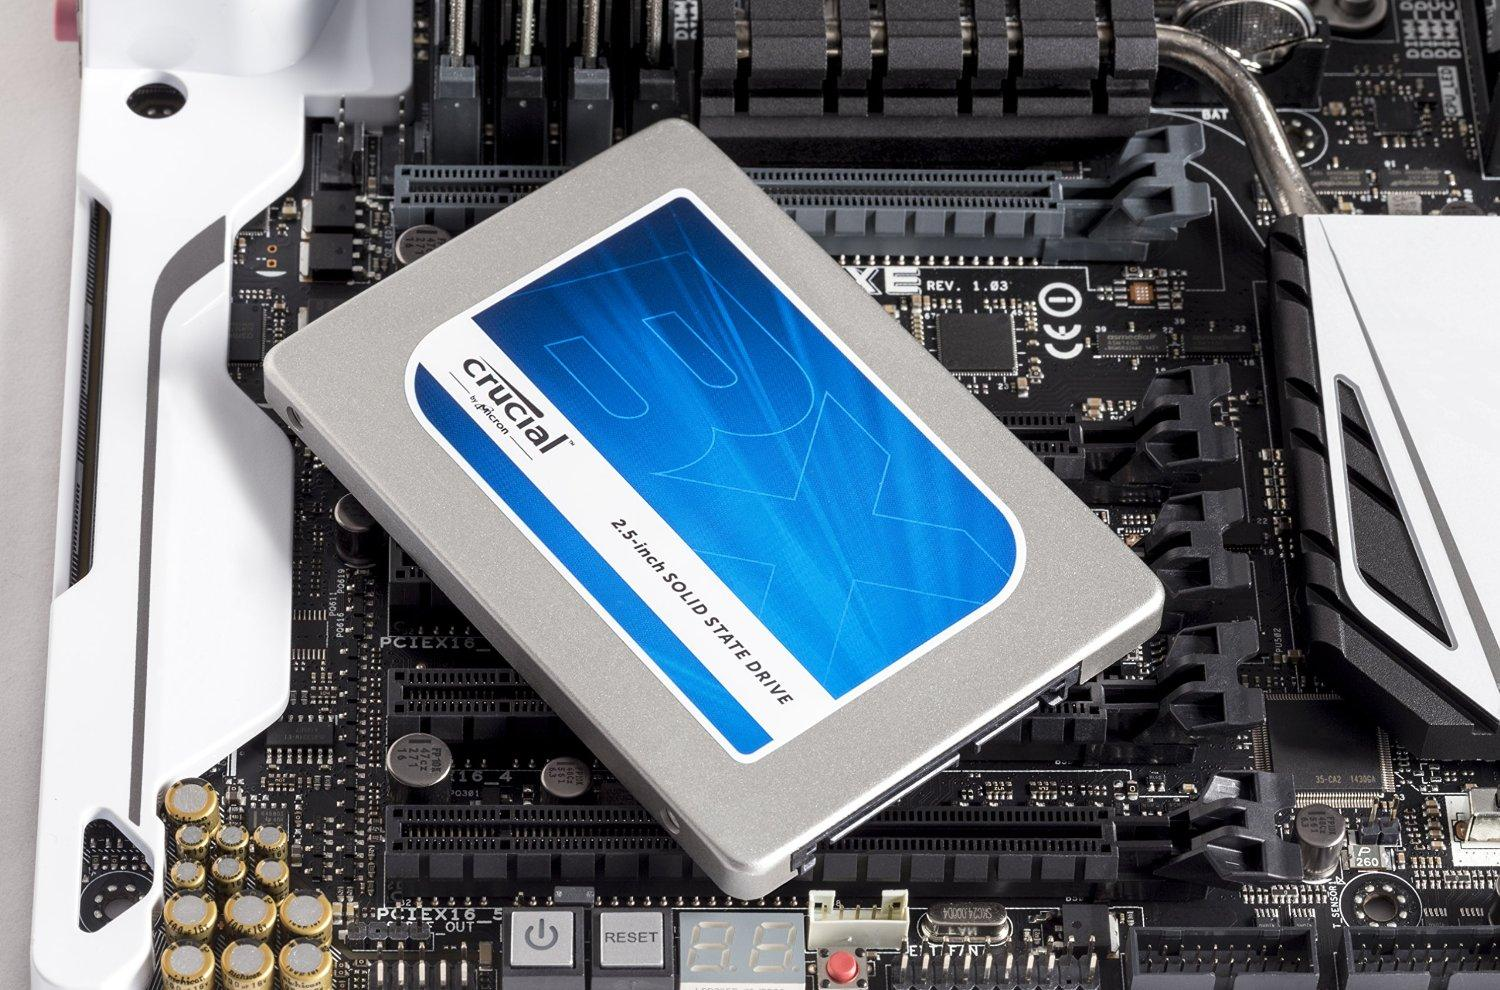 $64.00 Crucial BX100 250GB SATA 2.5 Inch Internal Solid State Drive